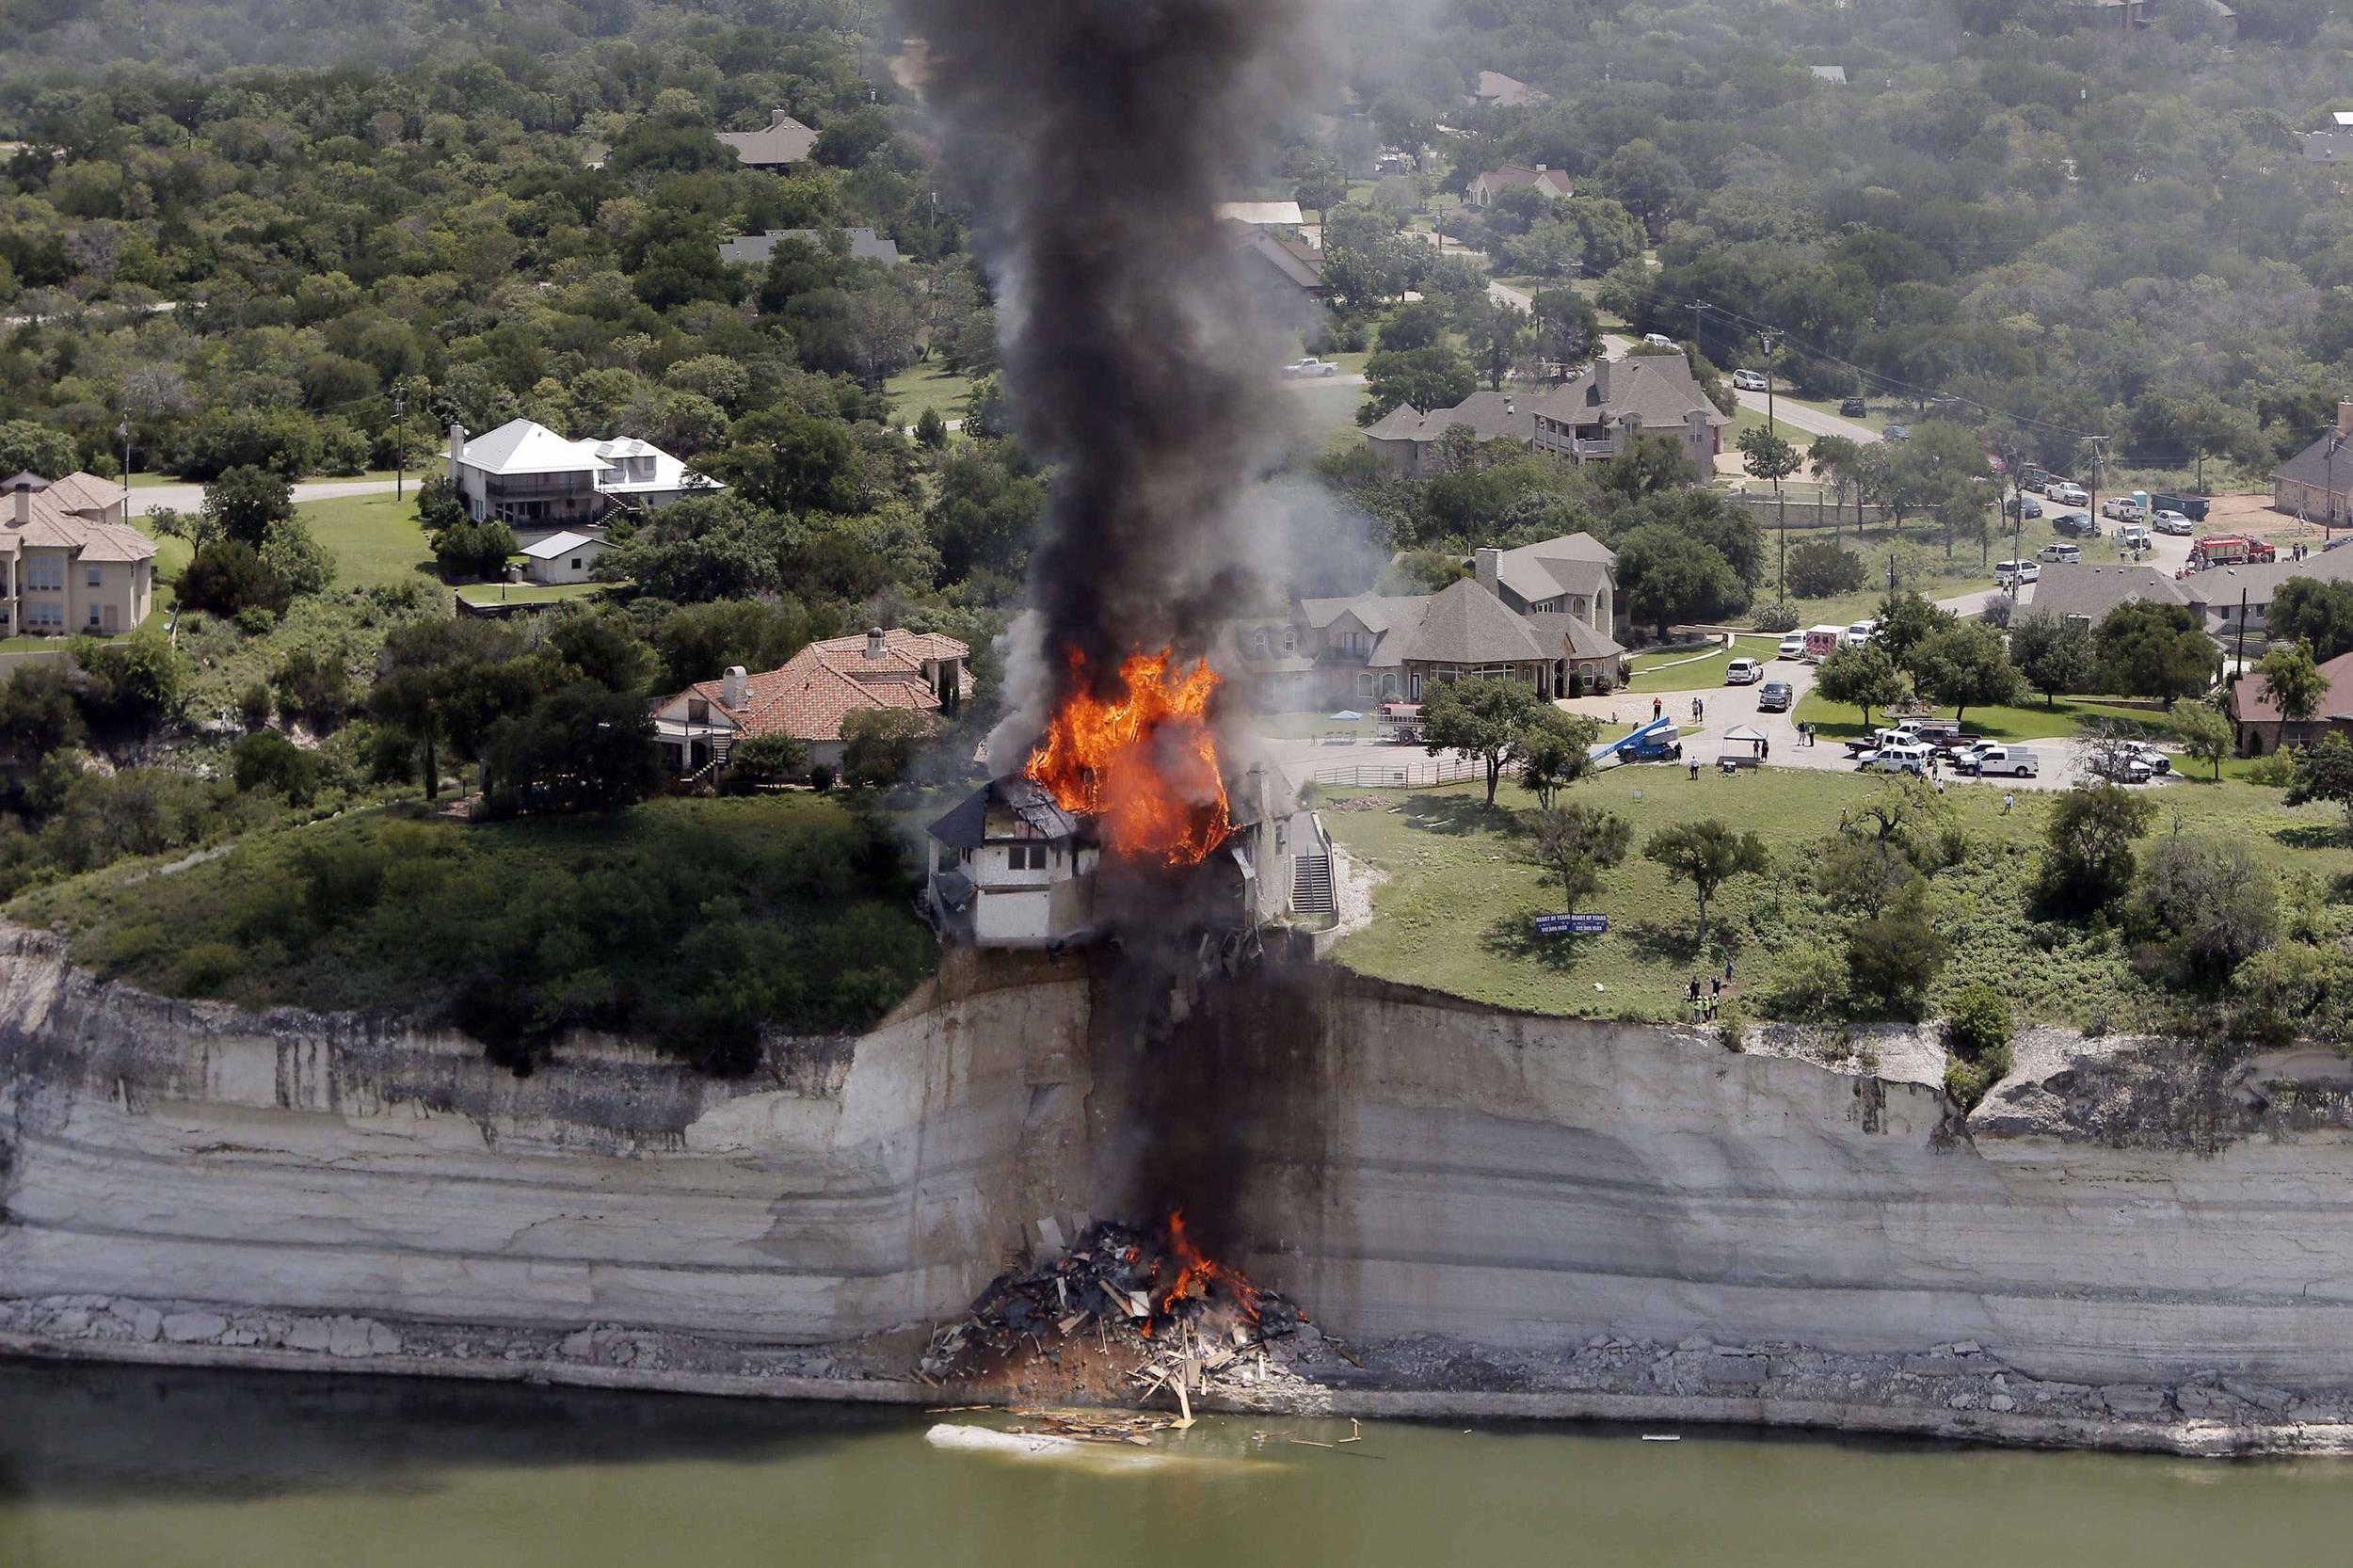 Image: Smoke rises from a house deliberately set on fire, days after part of the ground it was resting on collapsed into Lake Whitney